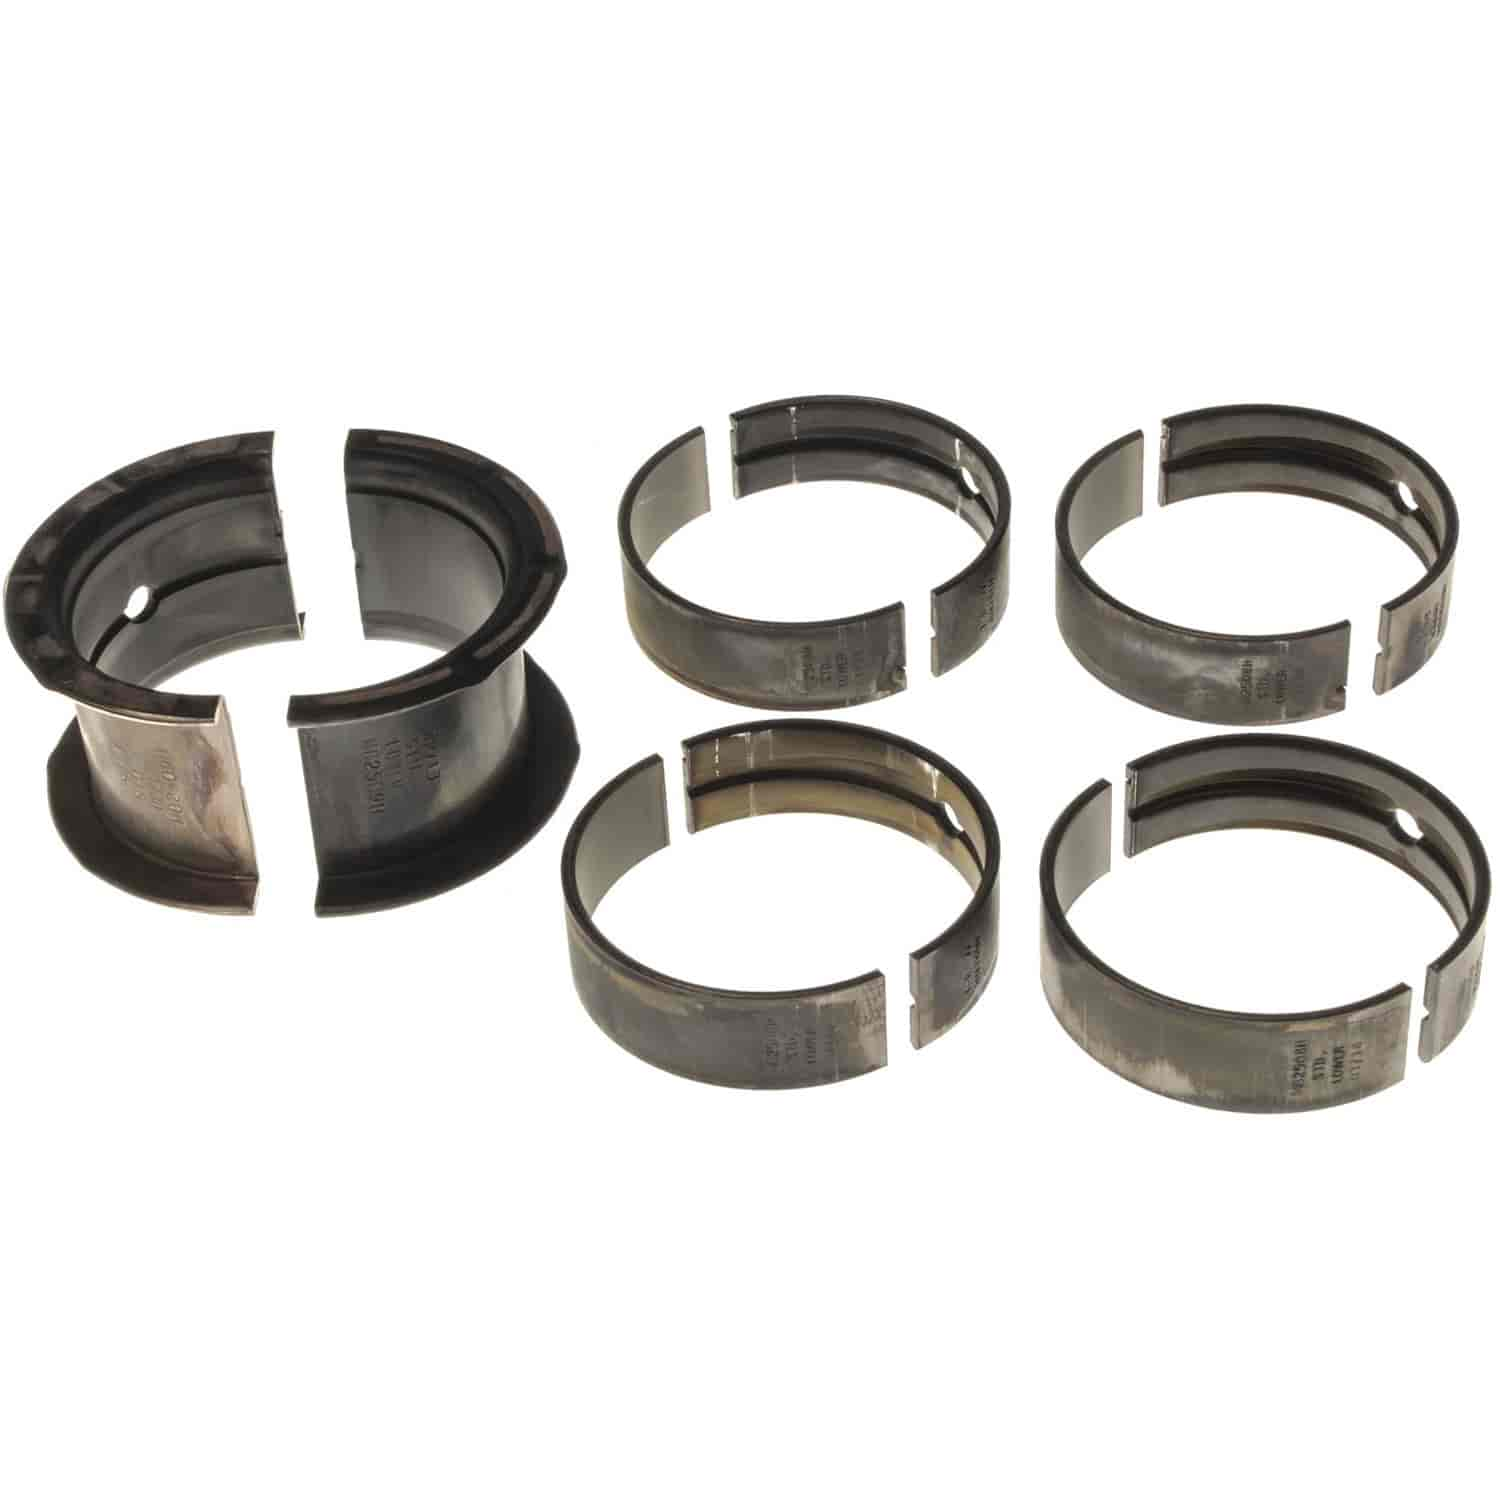 Clevite MS909HX - Clevite 77 High-Performance Bearings